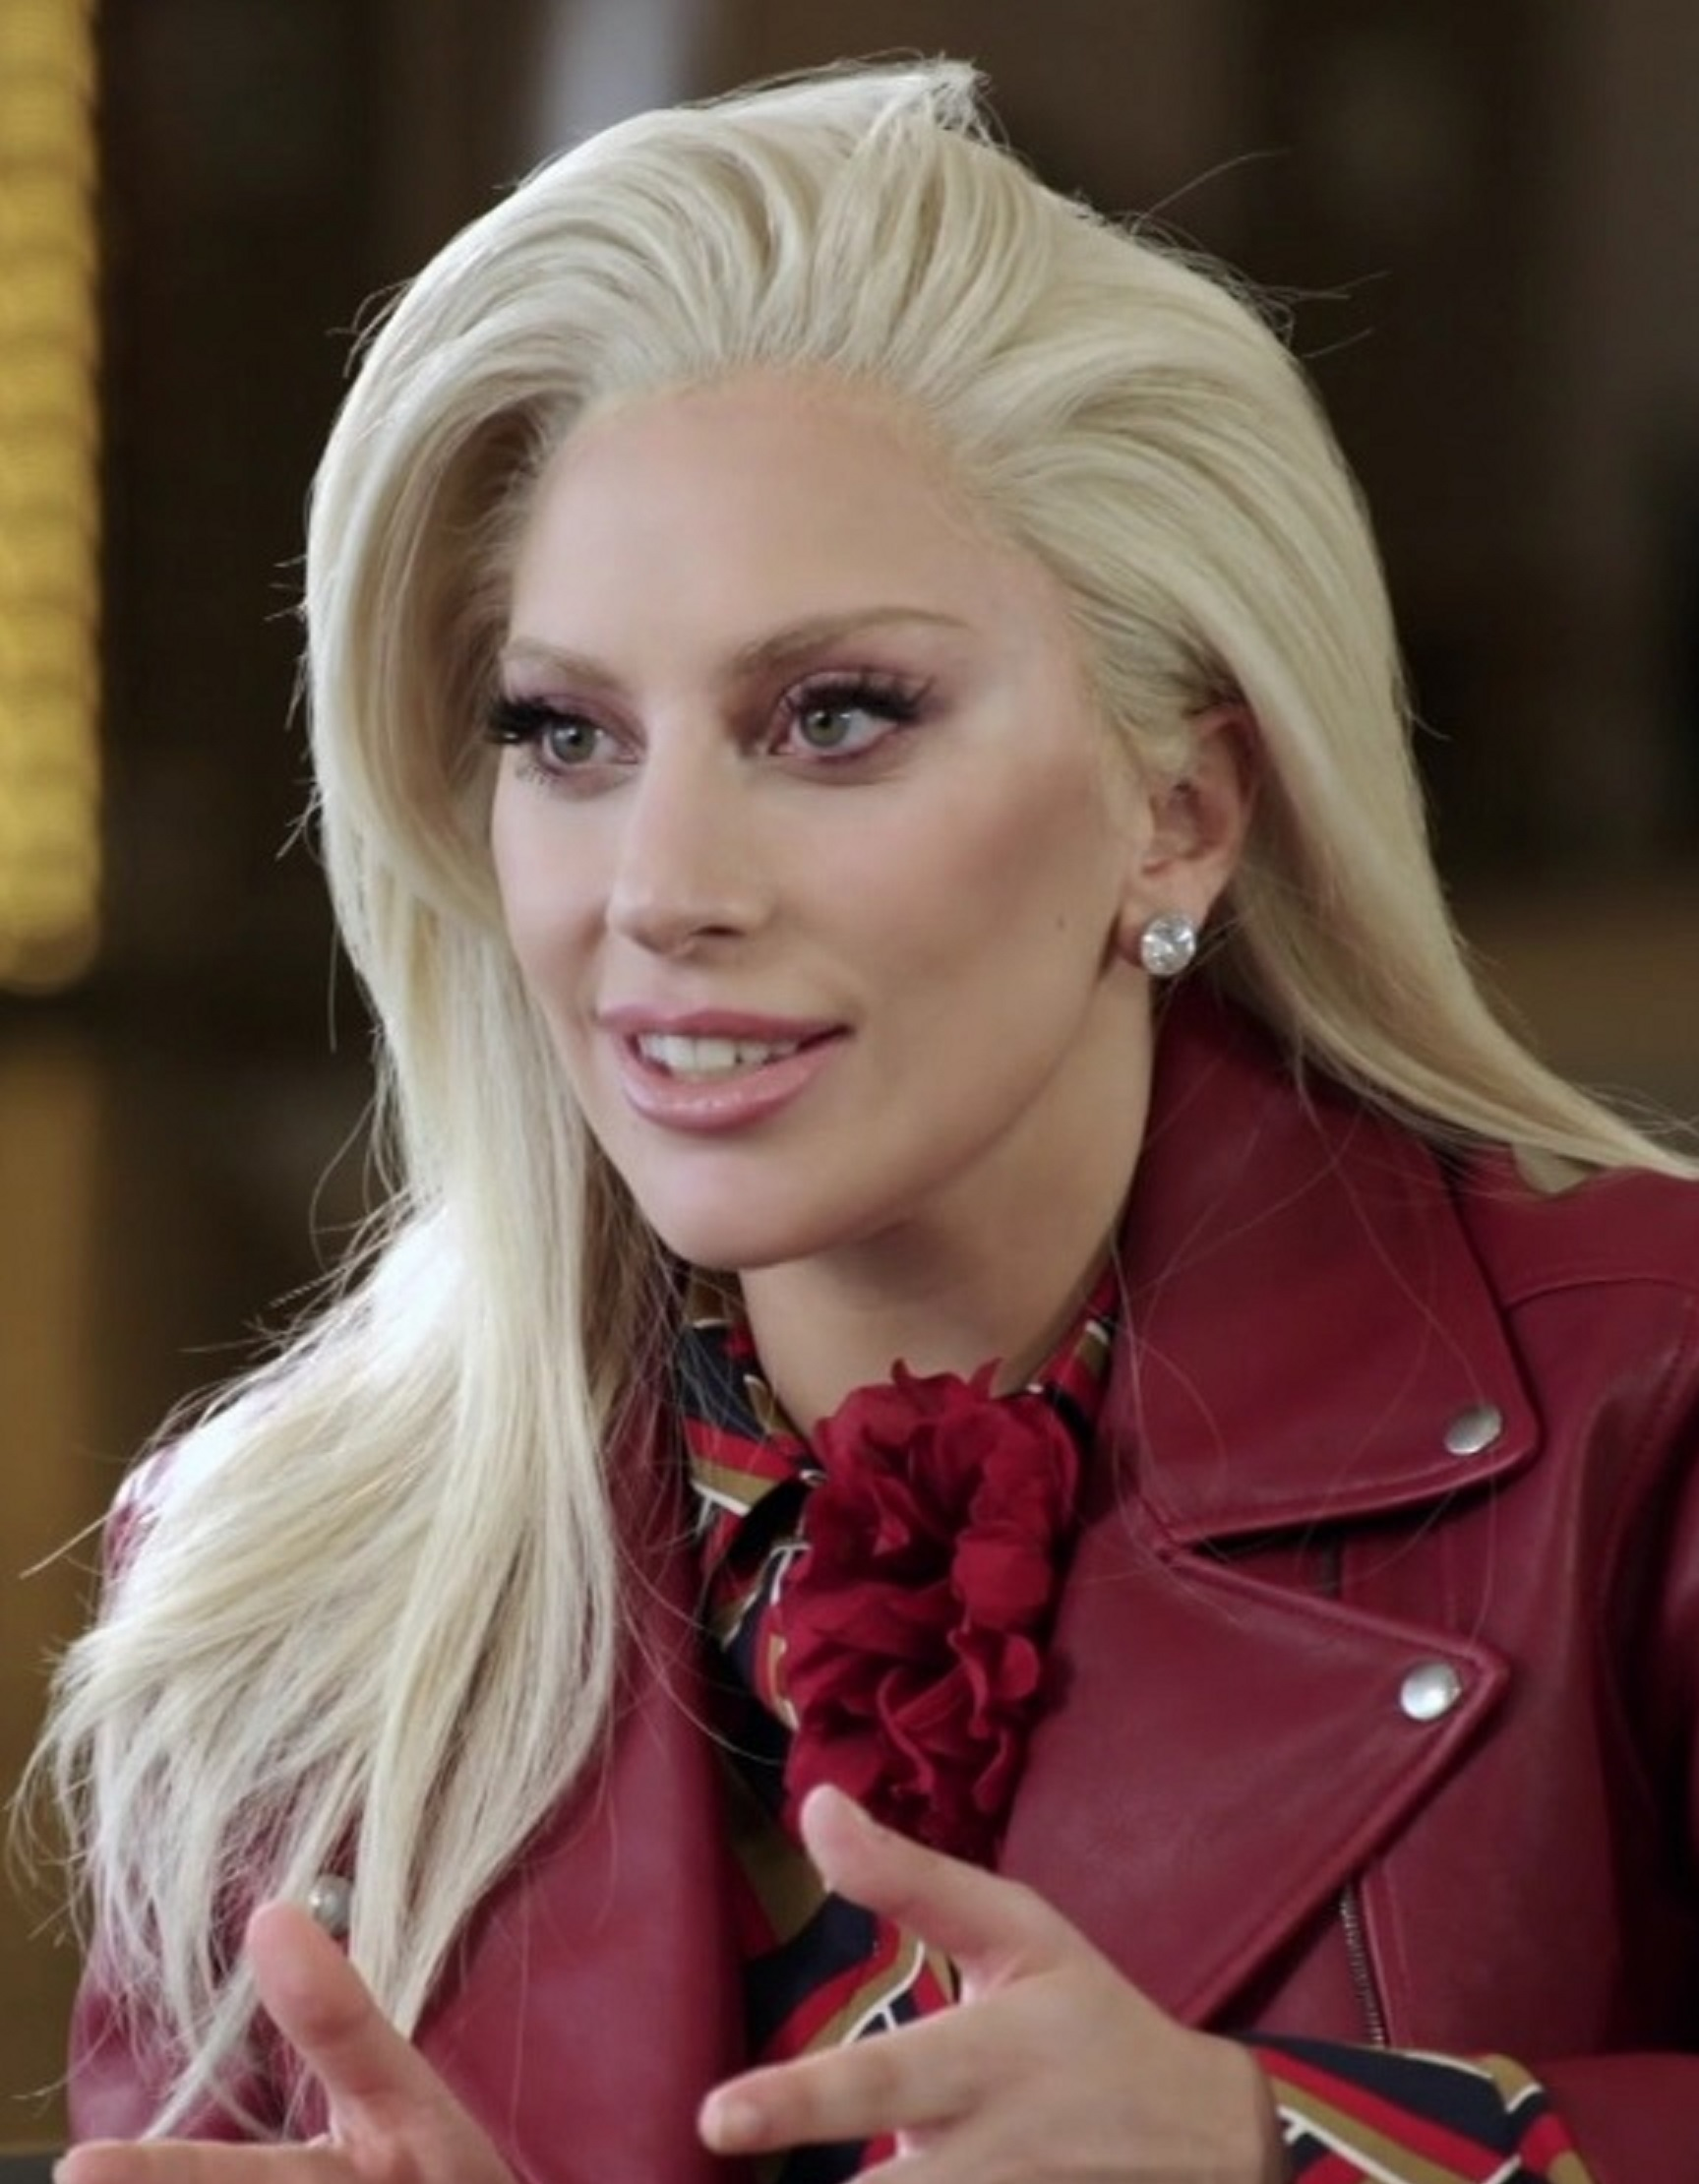 Lady Gaga during an interview for [[NFL Network]] in 2016